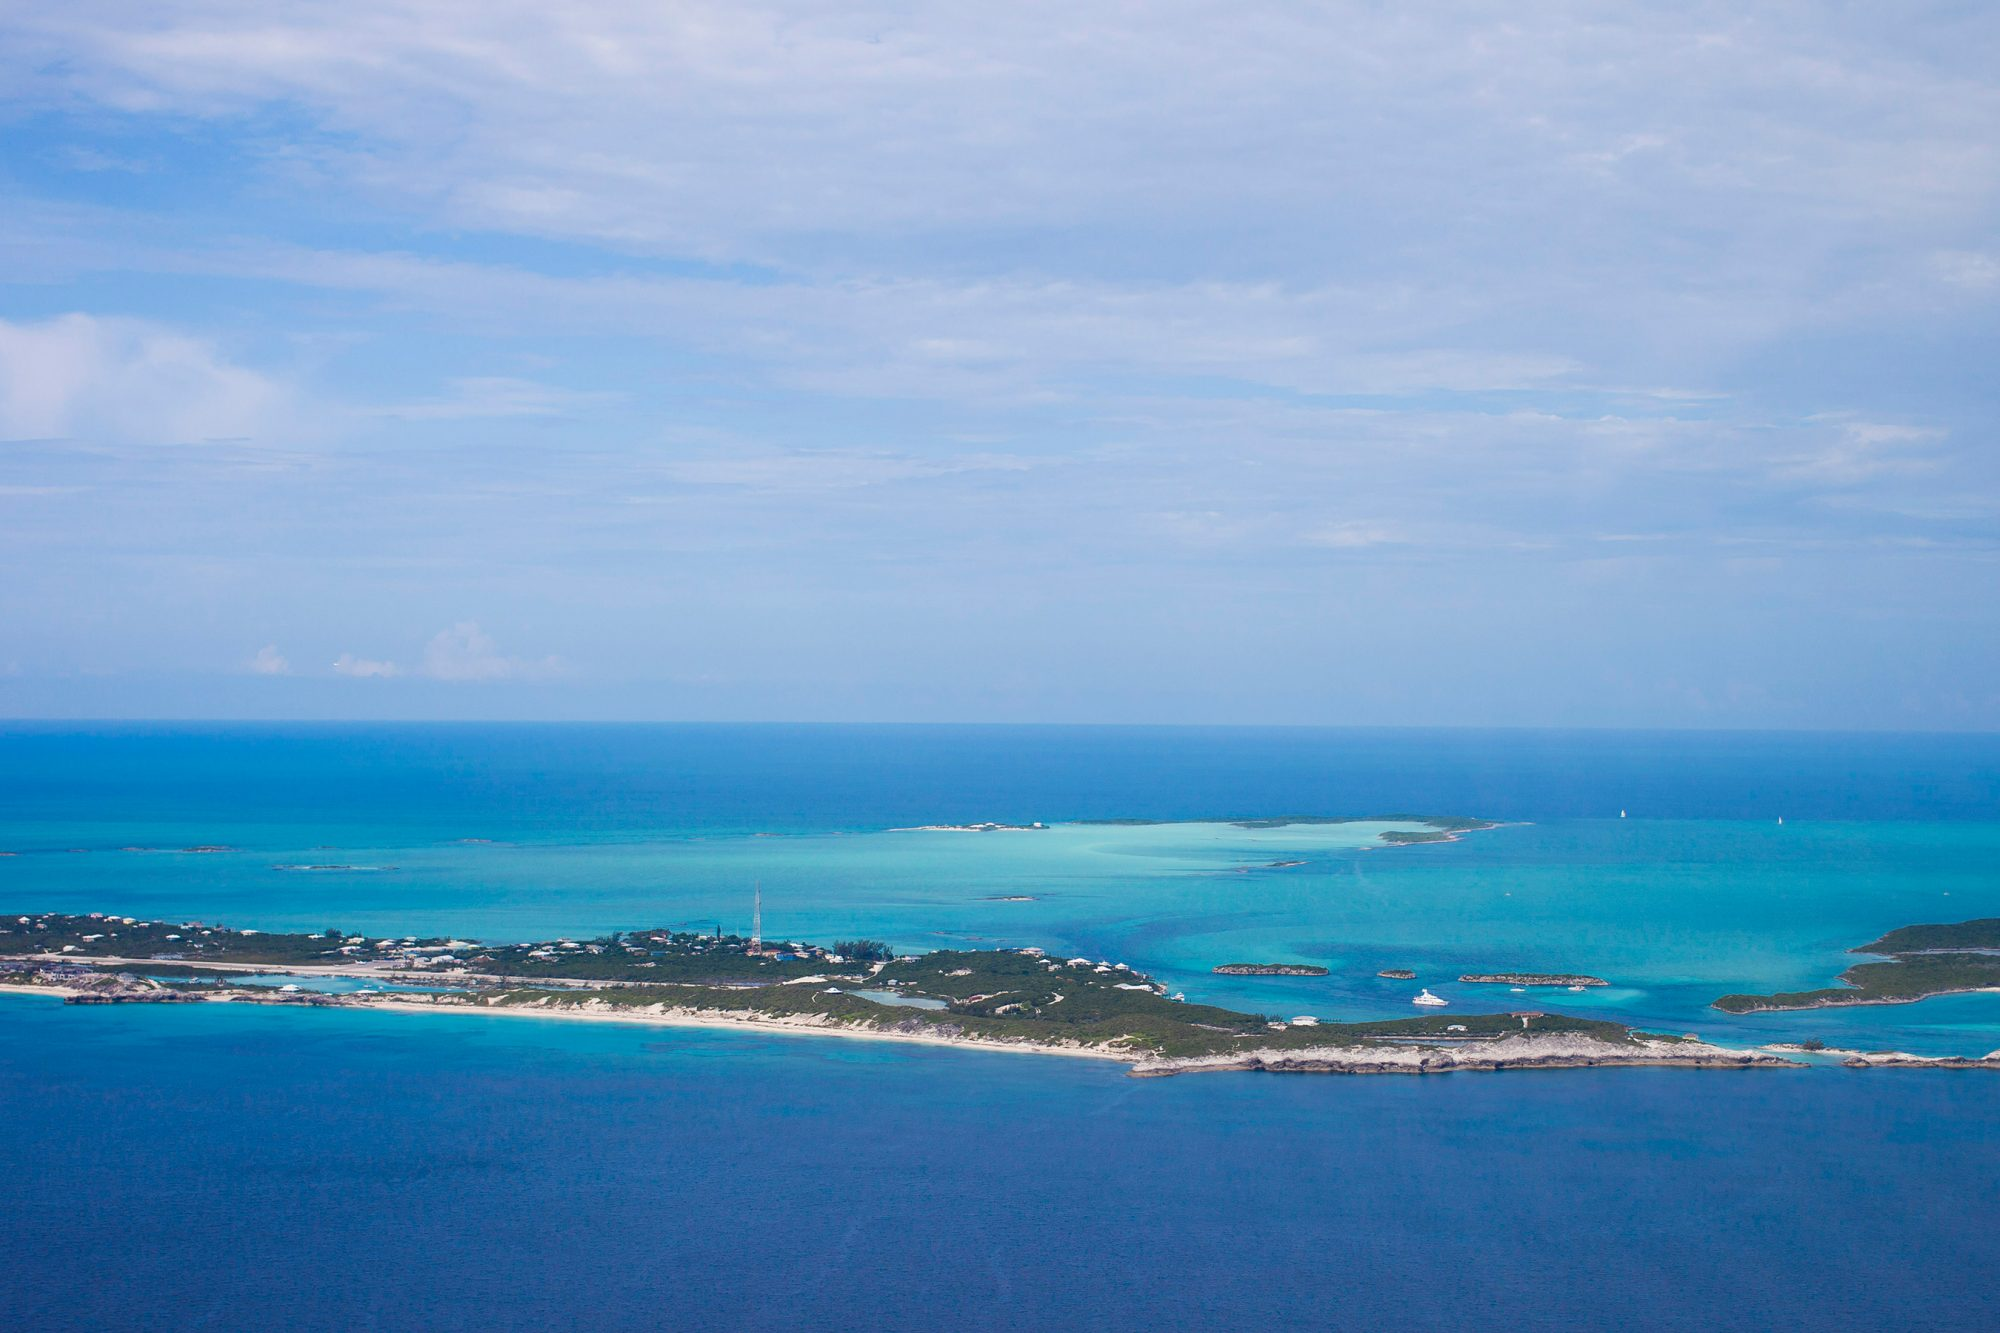 The Bahamas - Places to visit